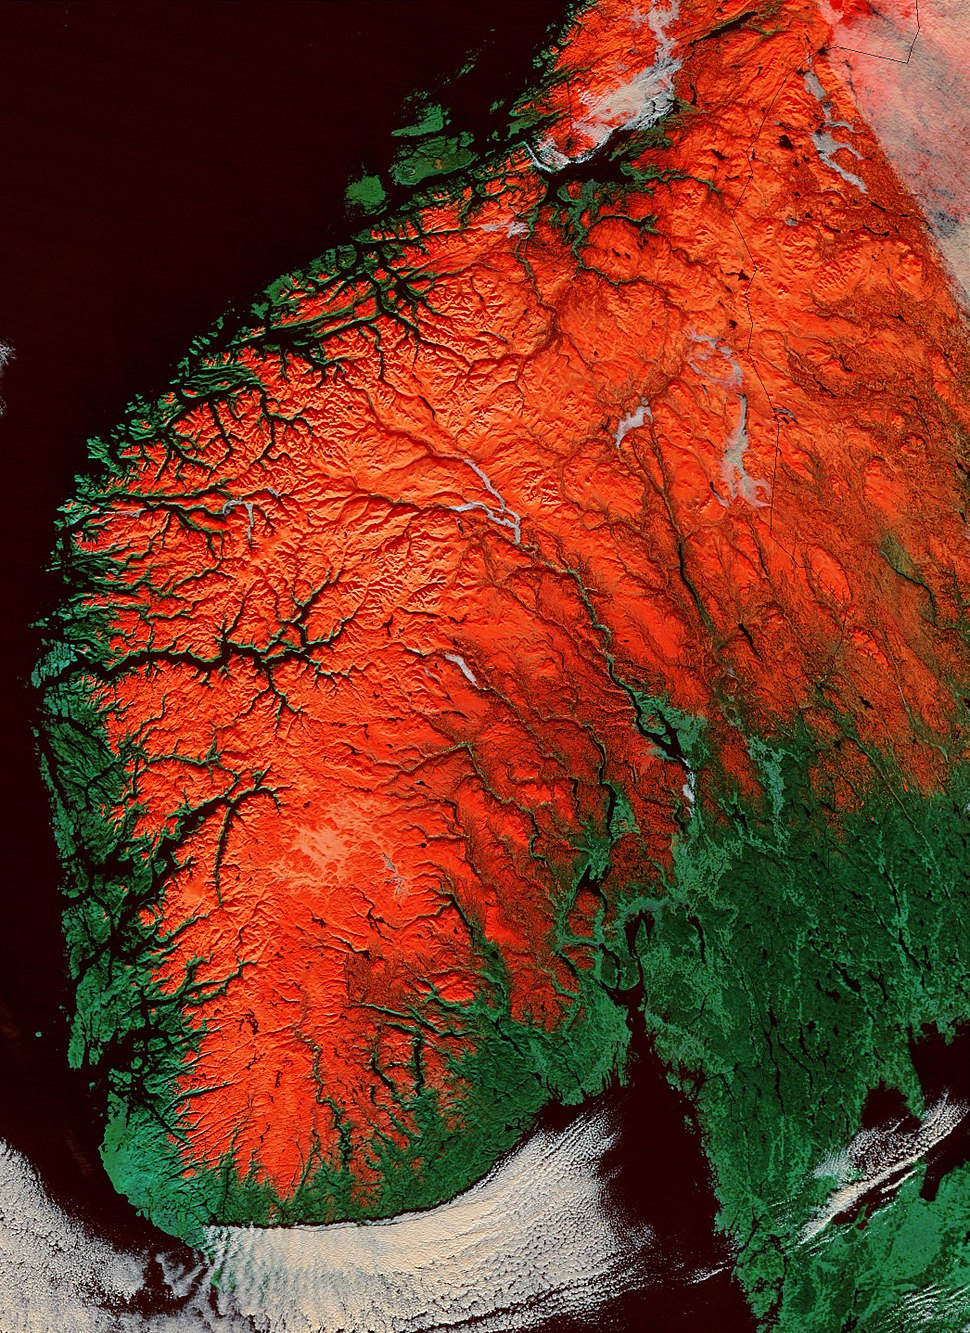 Terrain of Norway with red snow